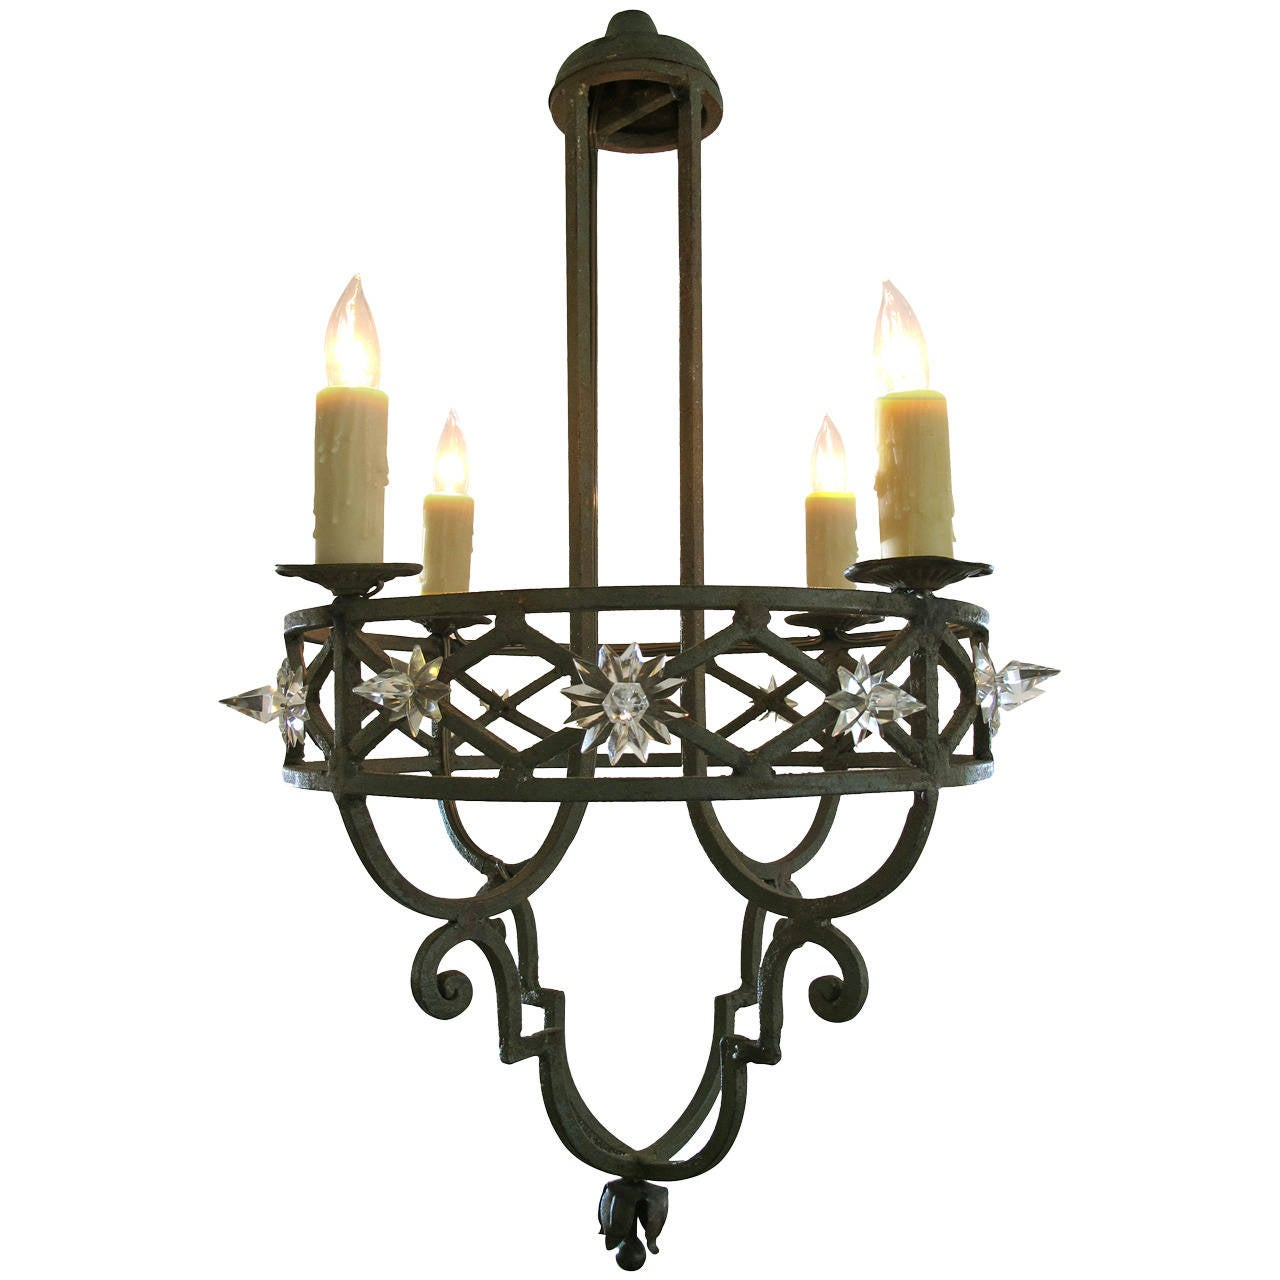 Well-Crafted Spanish Dark Green Painted Hand-Wrought iron ...